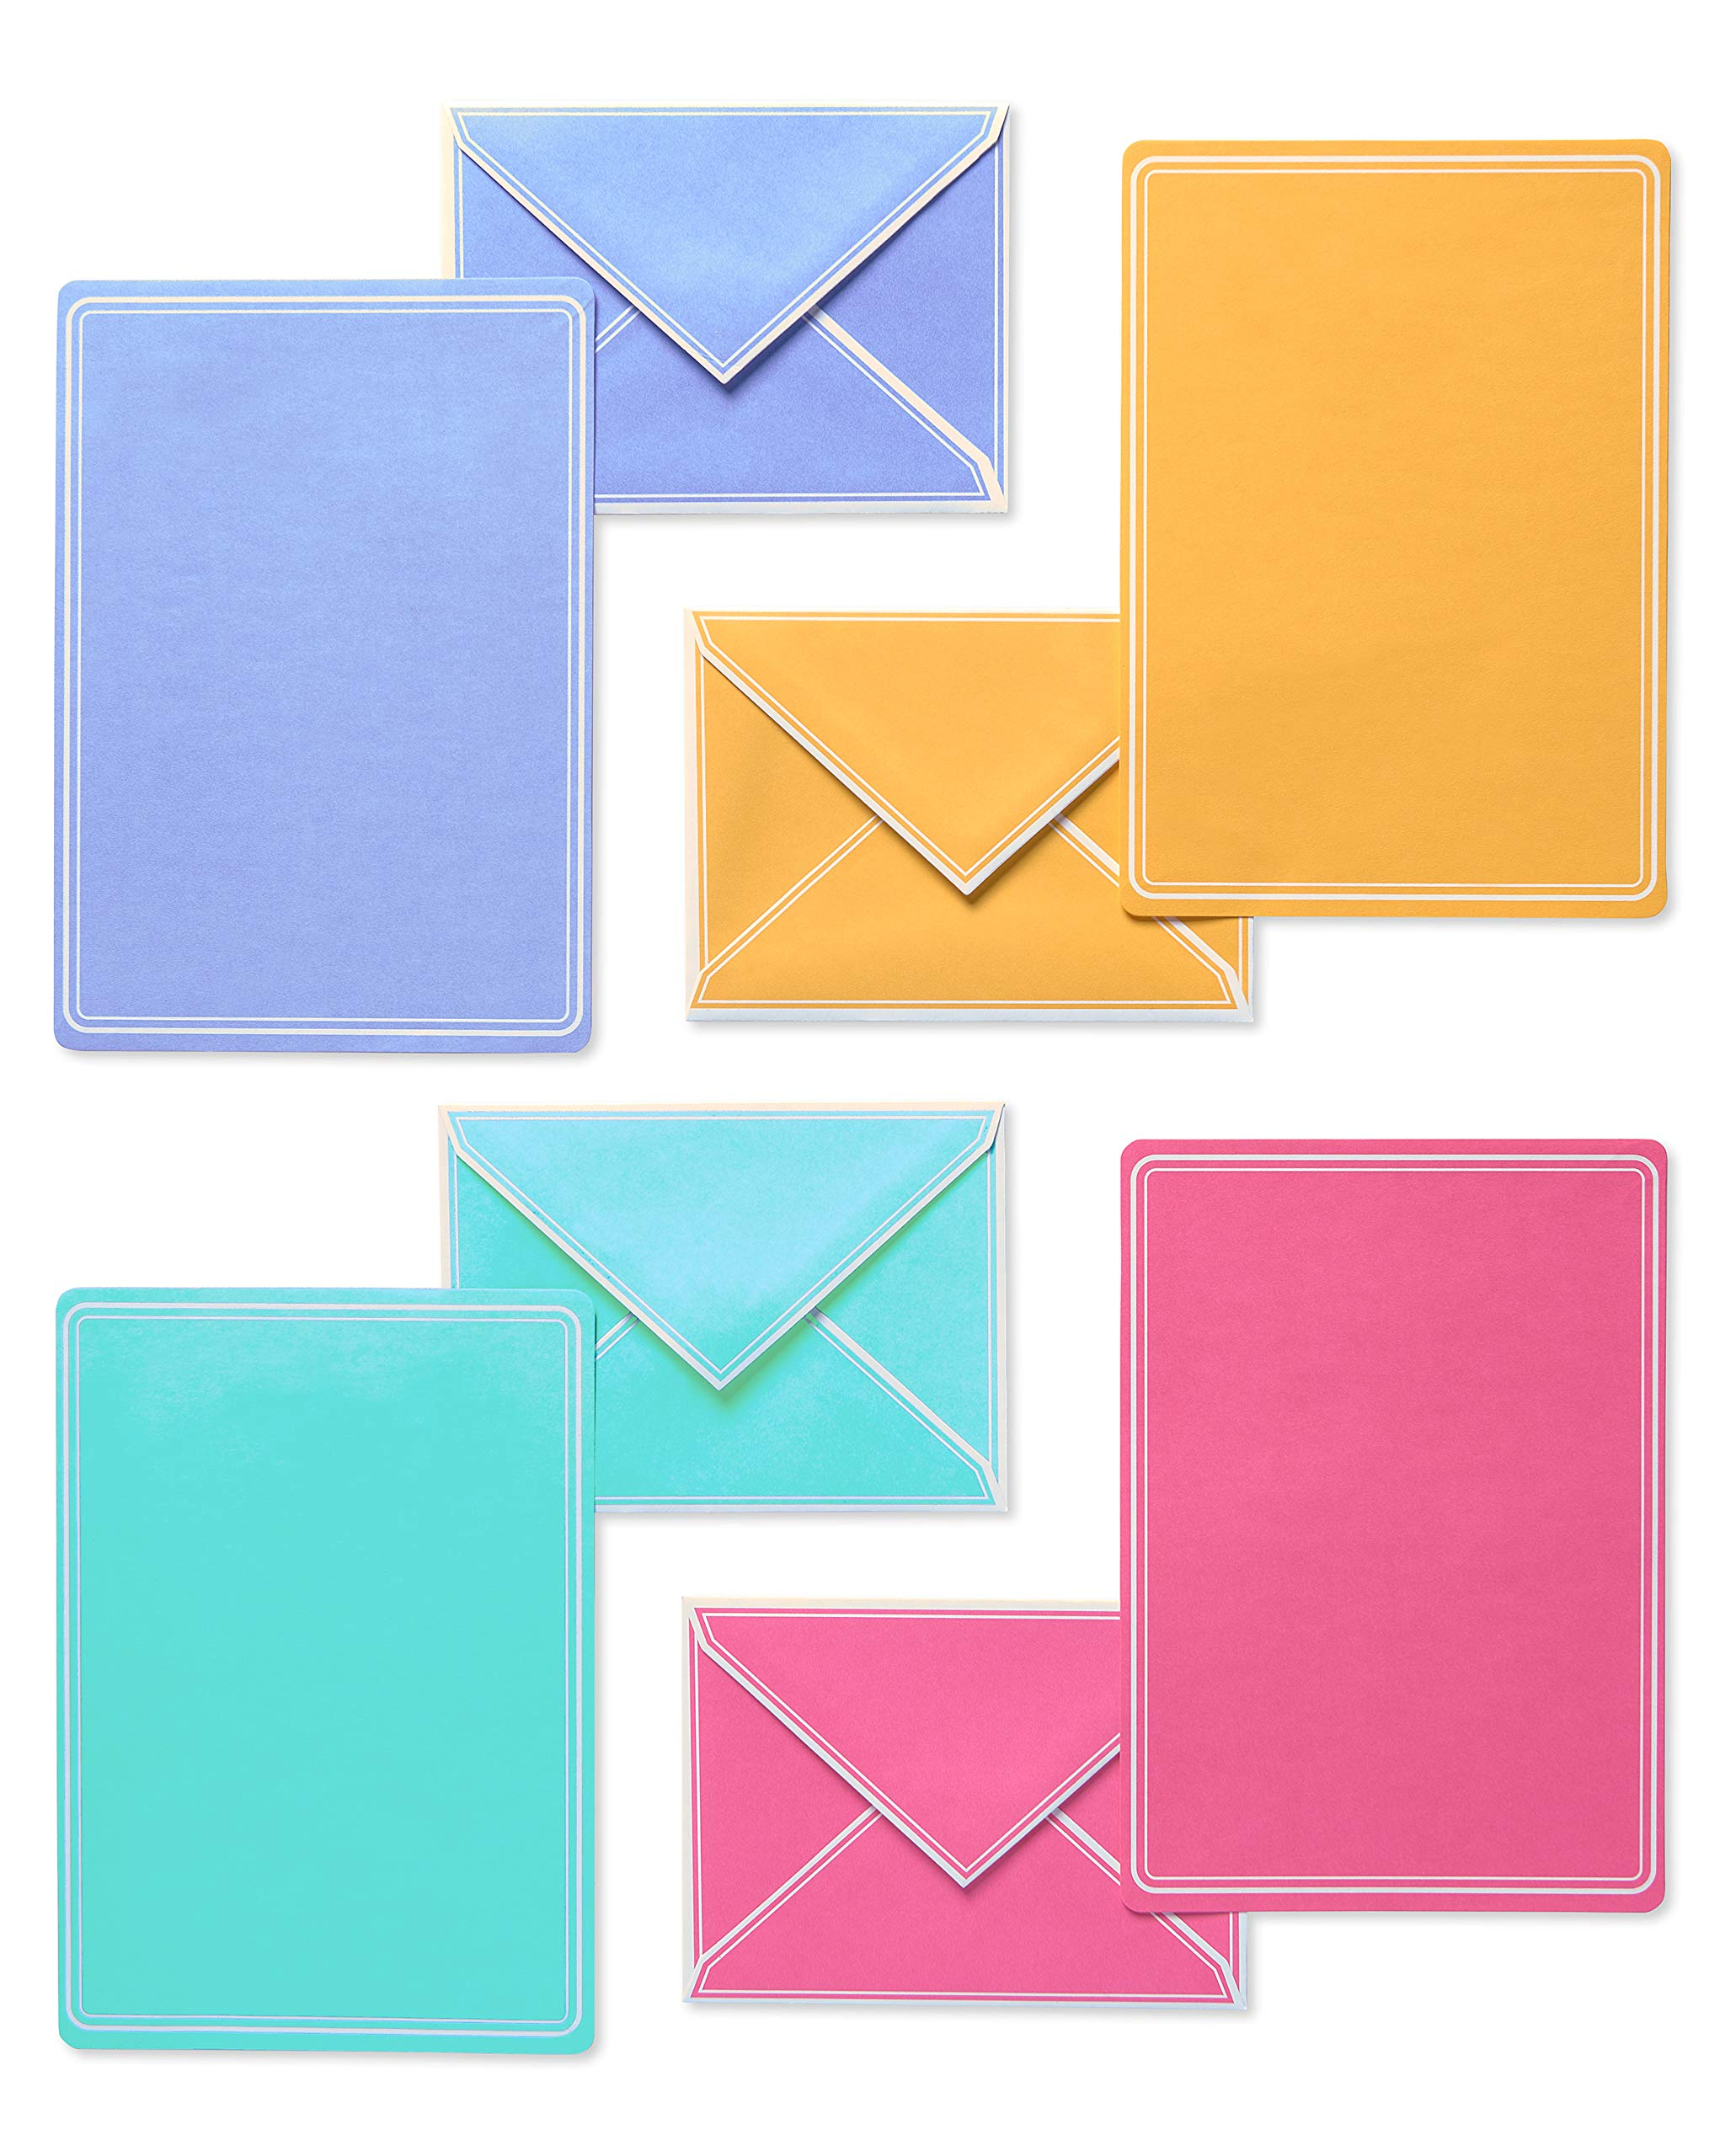 American Greetings Pastel Stationery Sheets and Colored Envelopes, 80-Count - 5672229